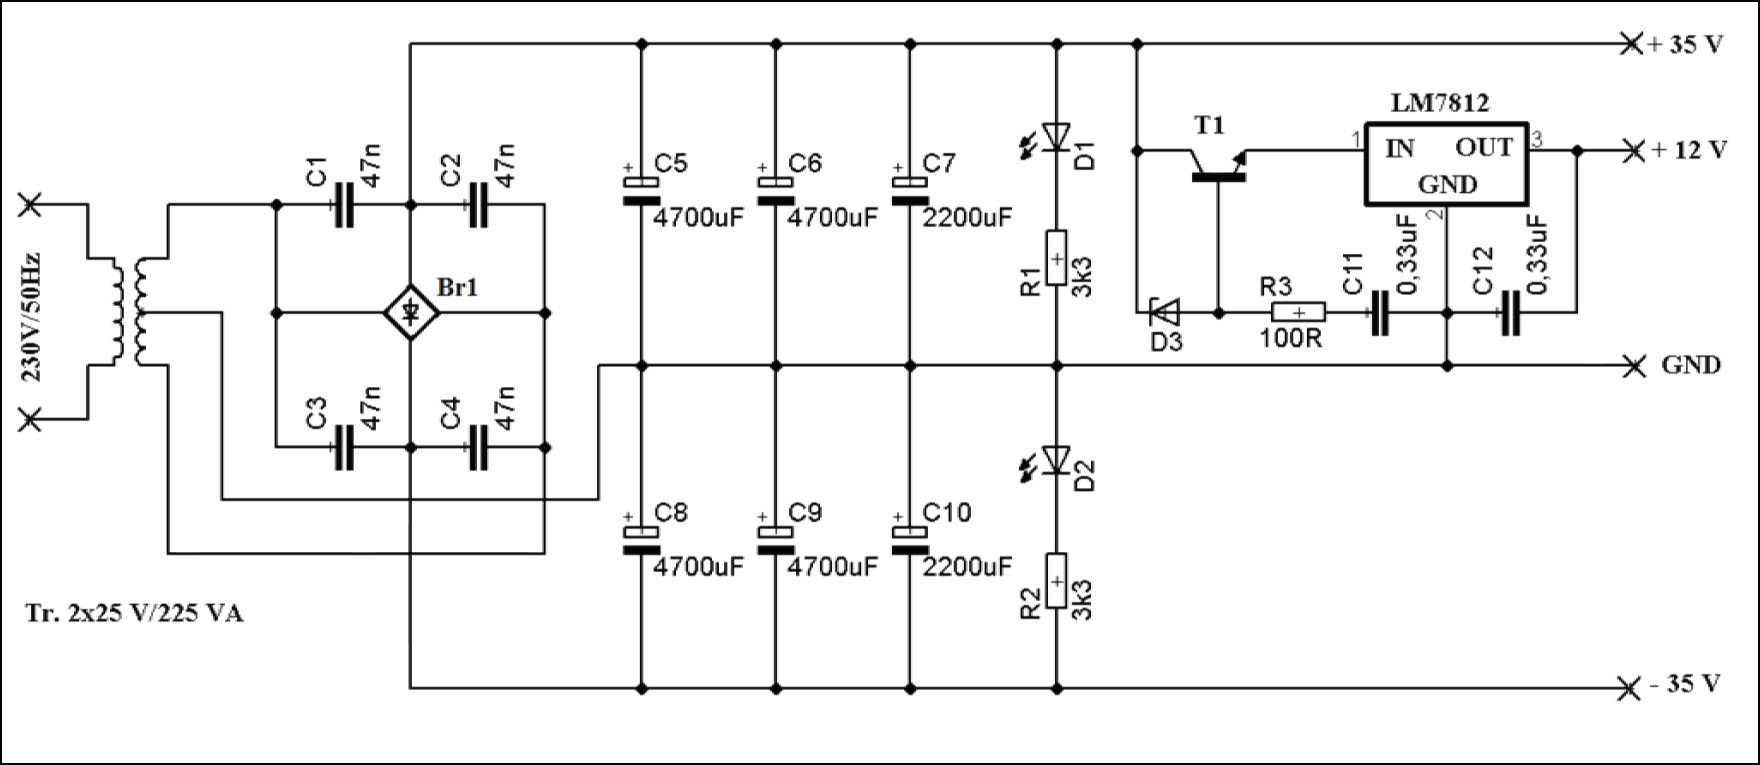 IRS2092 STEREO CLASS D AMPLIFIER SCHEMATIC CIRCUIT DIAGRAM